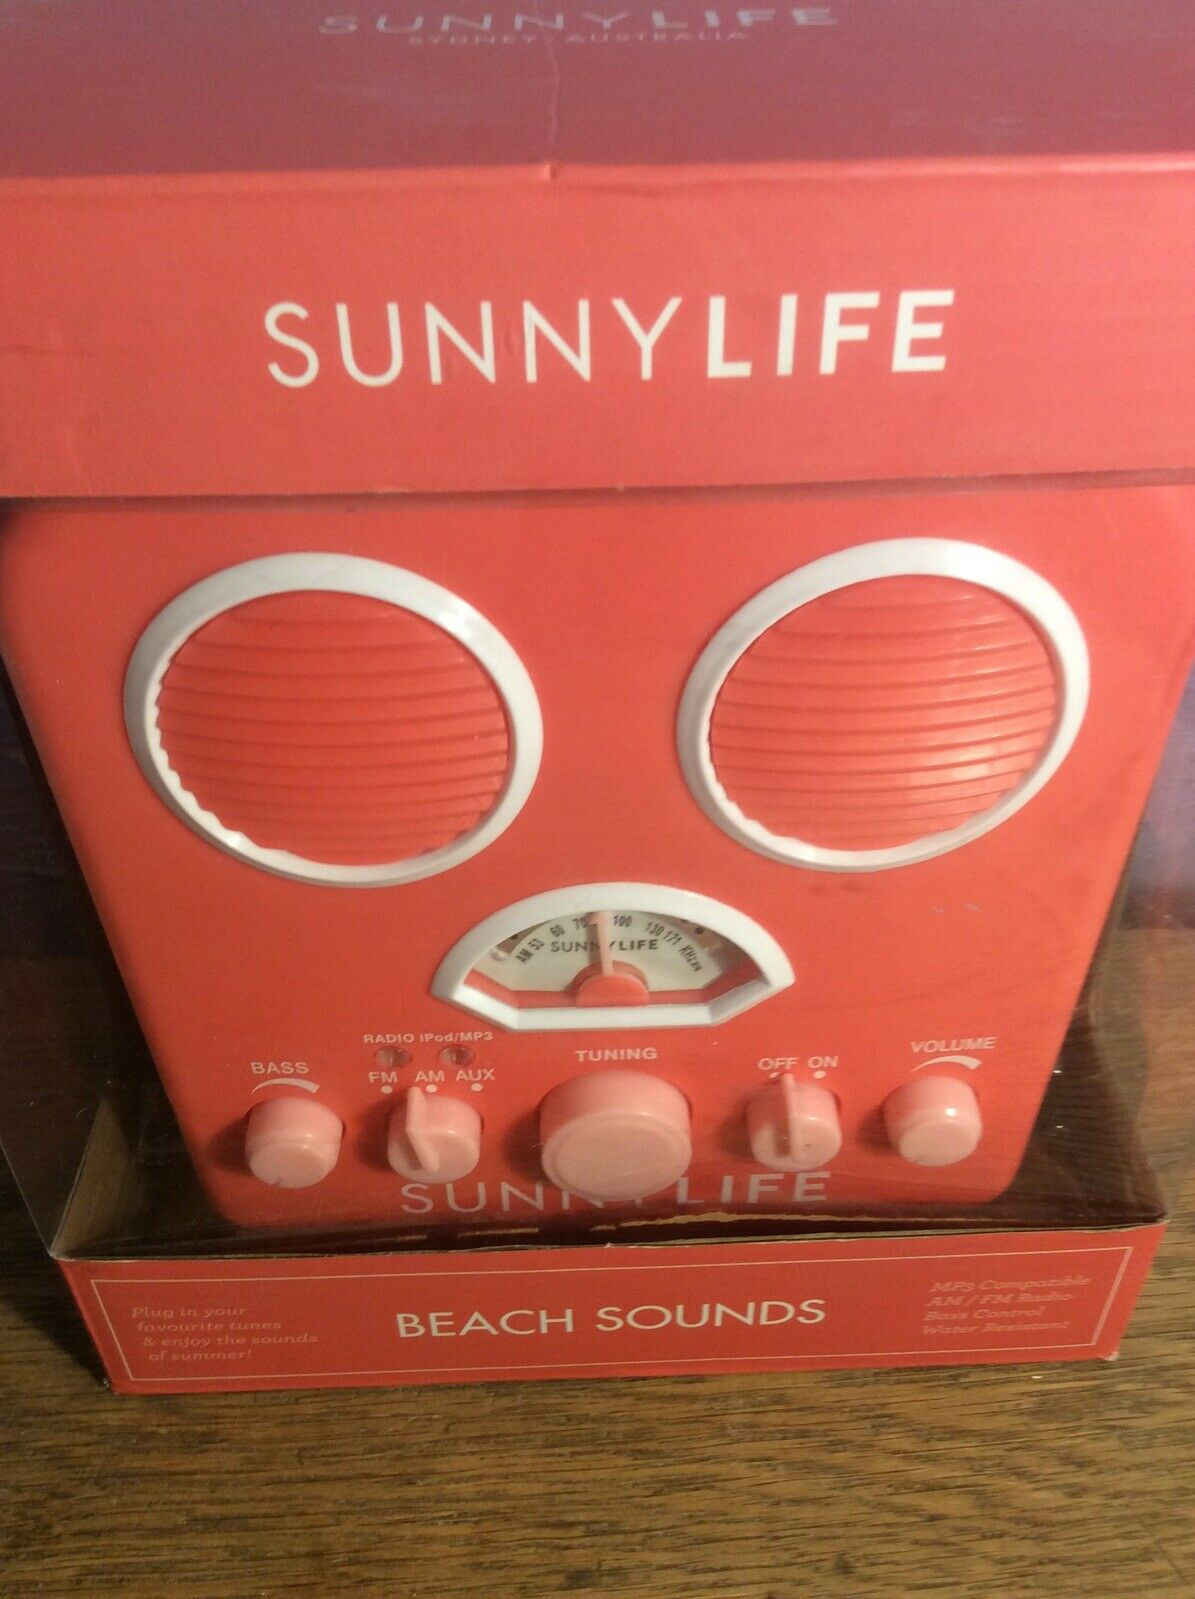 Sunnylife Retro Portable Beach Mp3 Smartphone Speaker With Am Fm Radio Pink For Sale Online Ebay